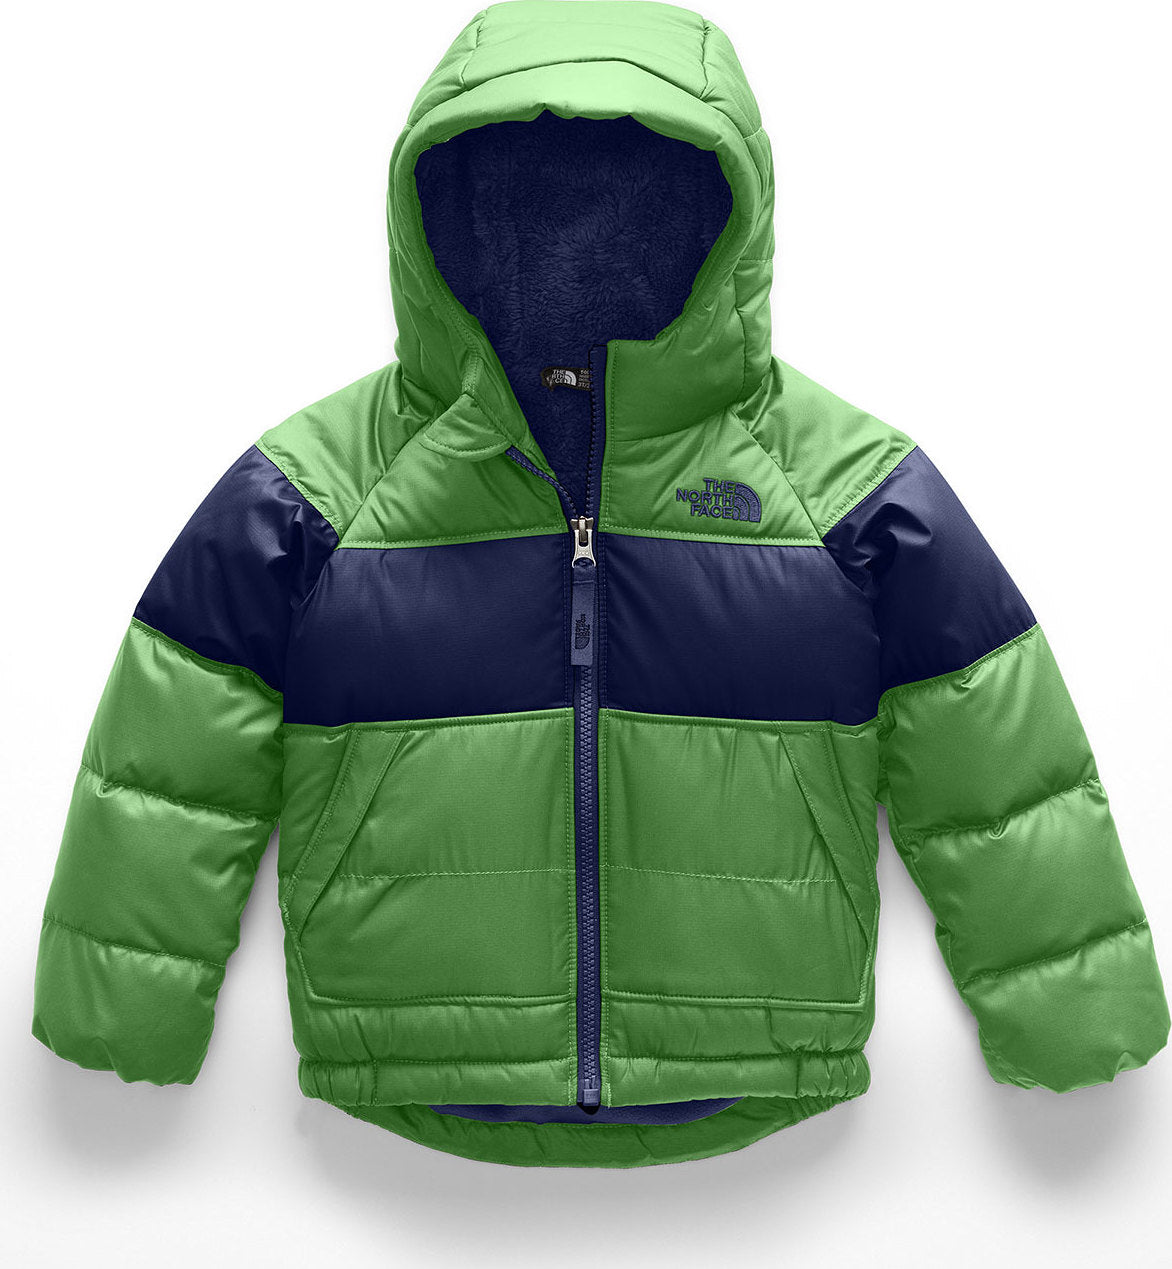 4d7882a23 The North Face Toddler Boy's Moondoggy 2.0 Down Jacket